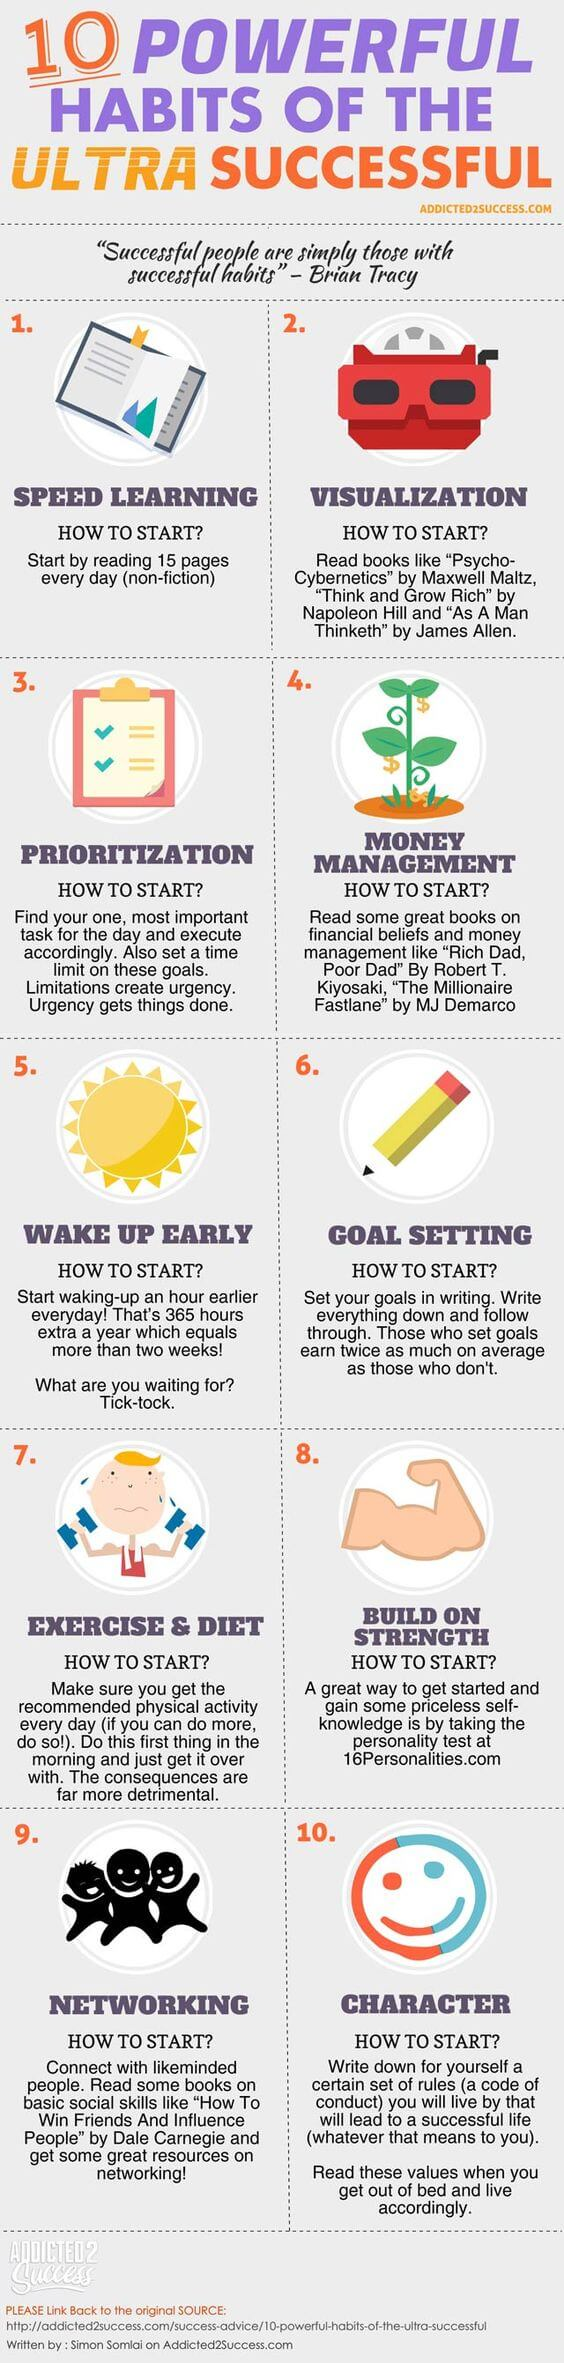 10 Powerful Habits Of Ultra-Successful People